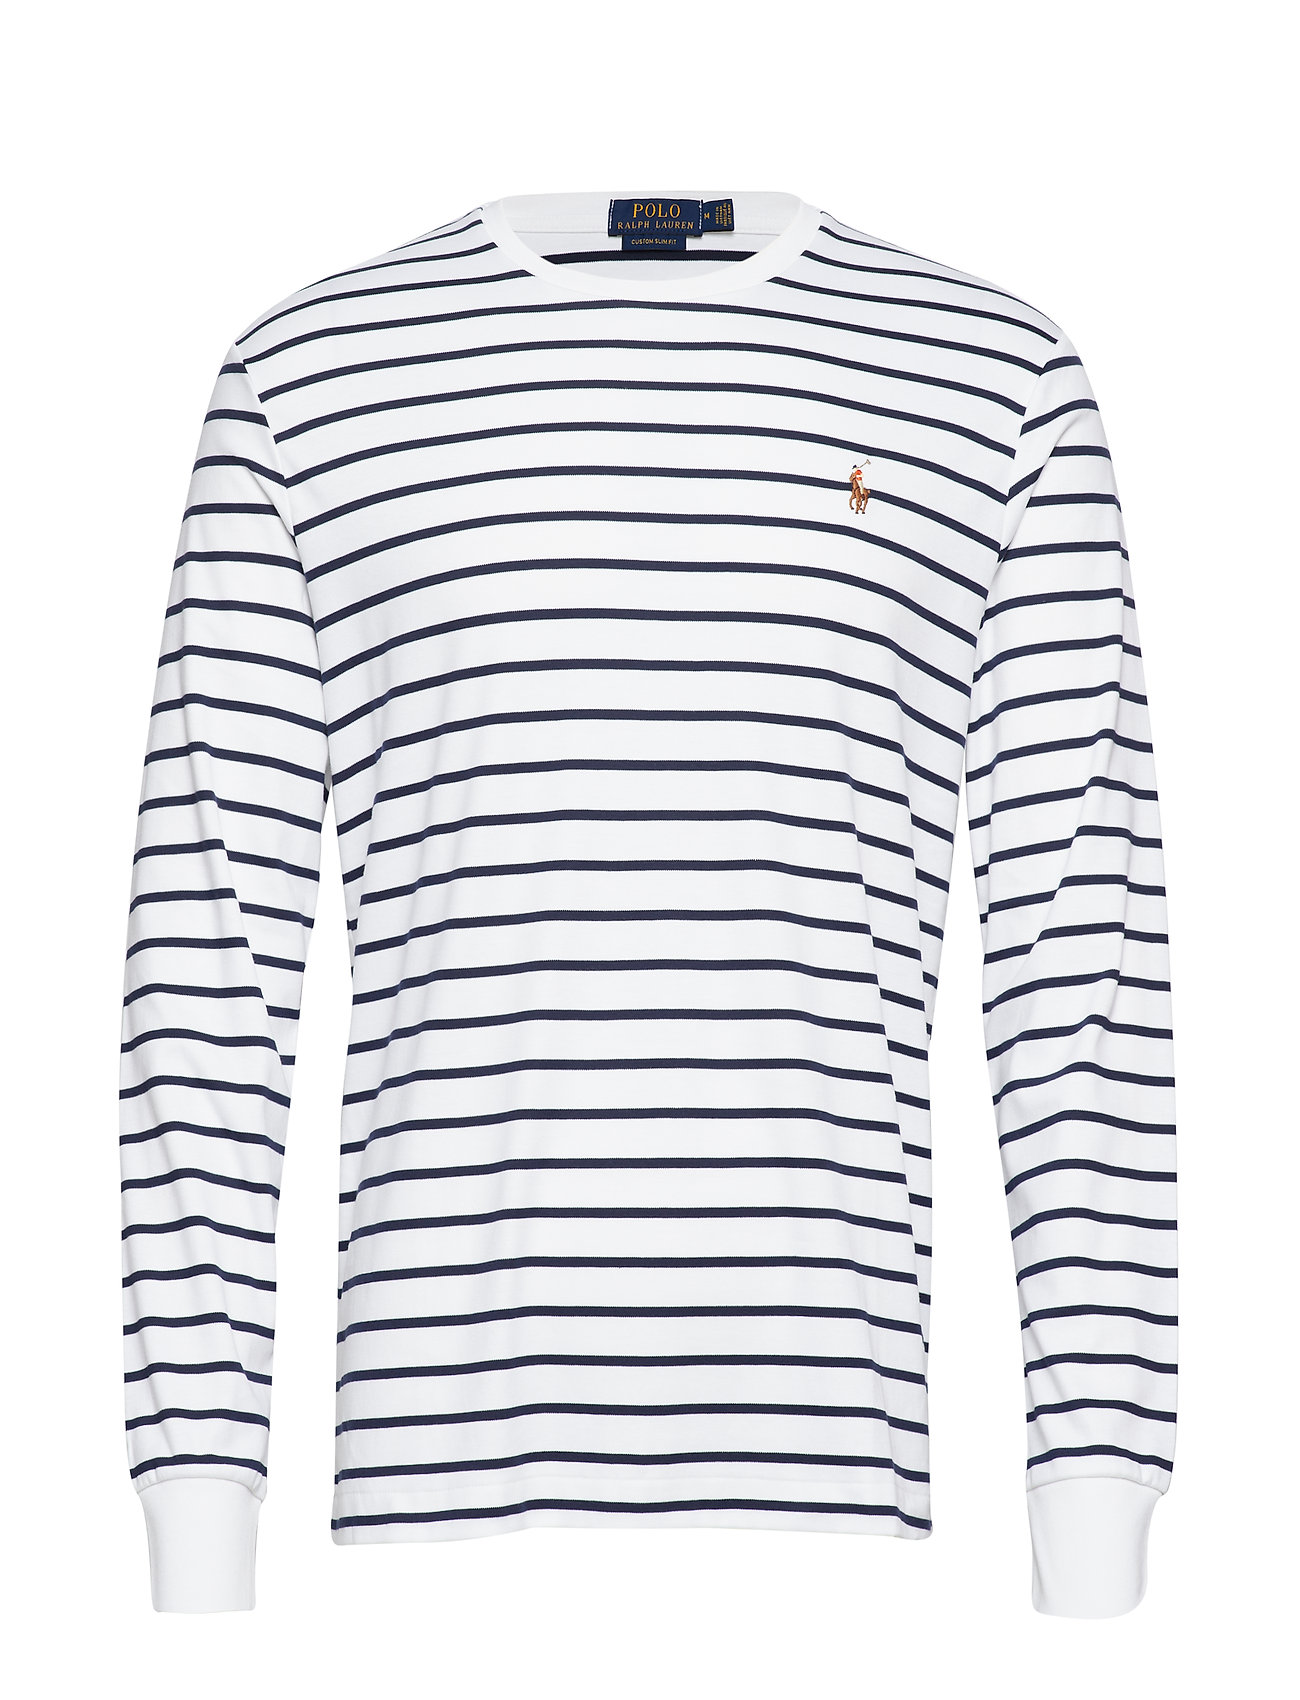 Polo Ralph Lauren Custom Slim Fit Interlock Tee - WHITE/FRENCH NAVY